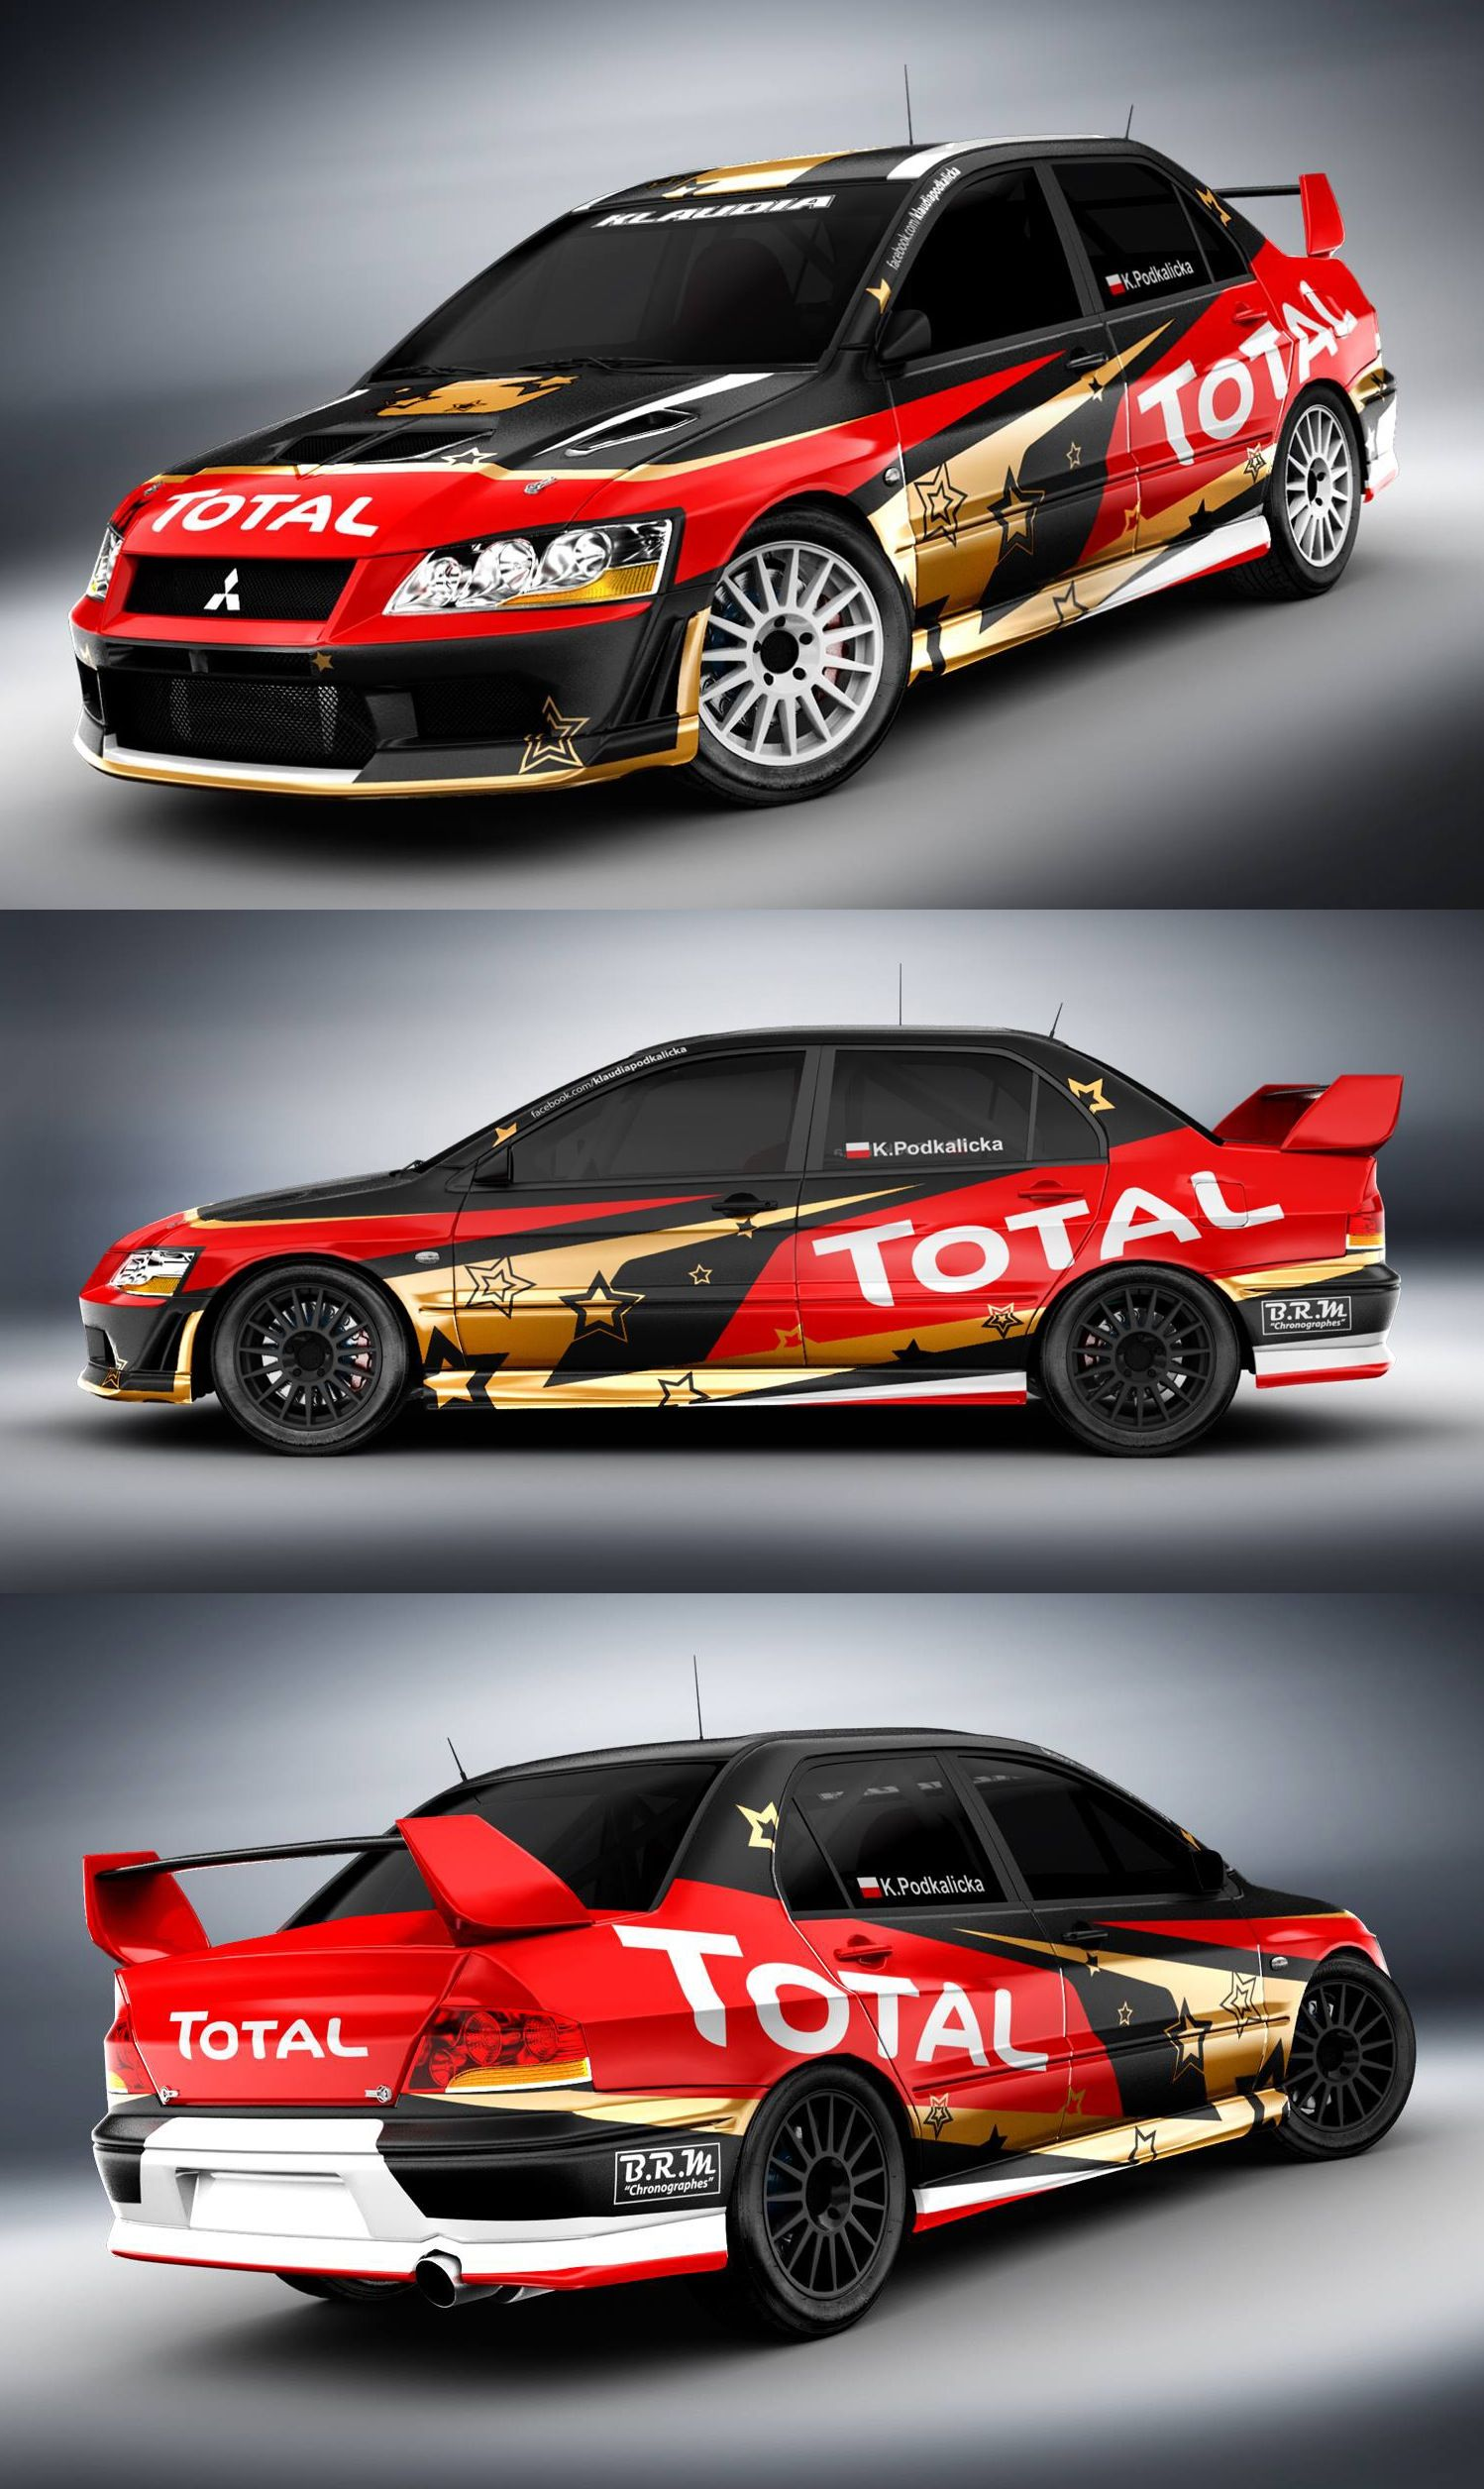 Lancer evo total racing livery we collect and generate